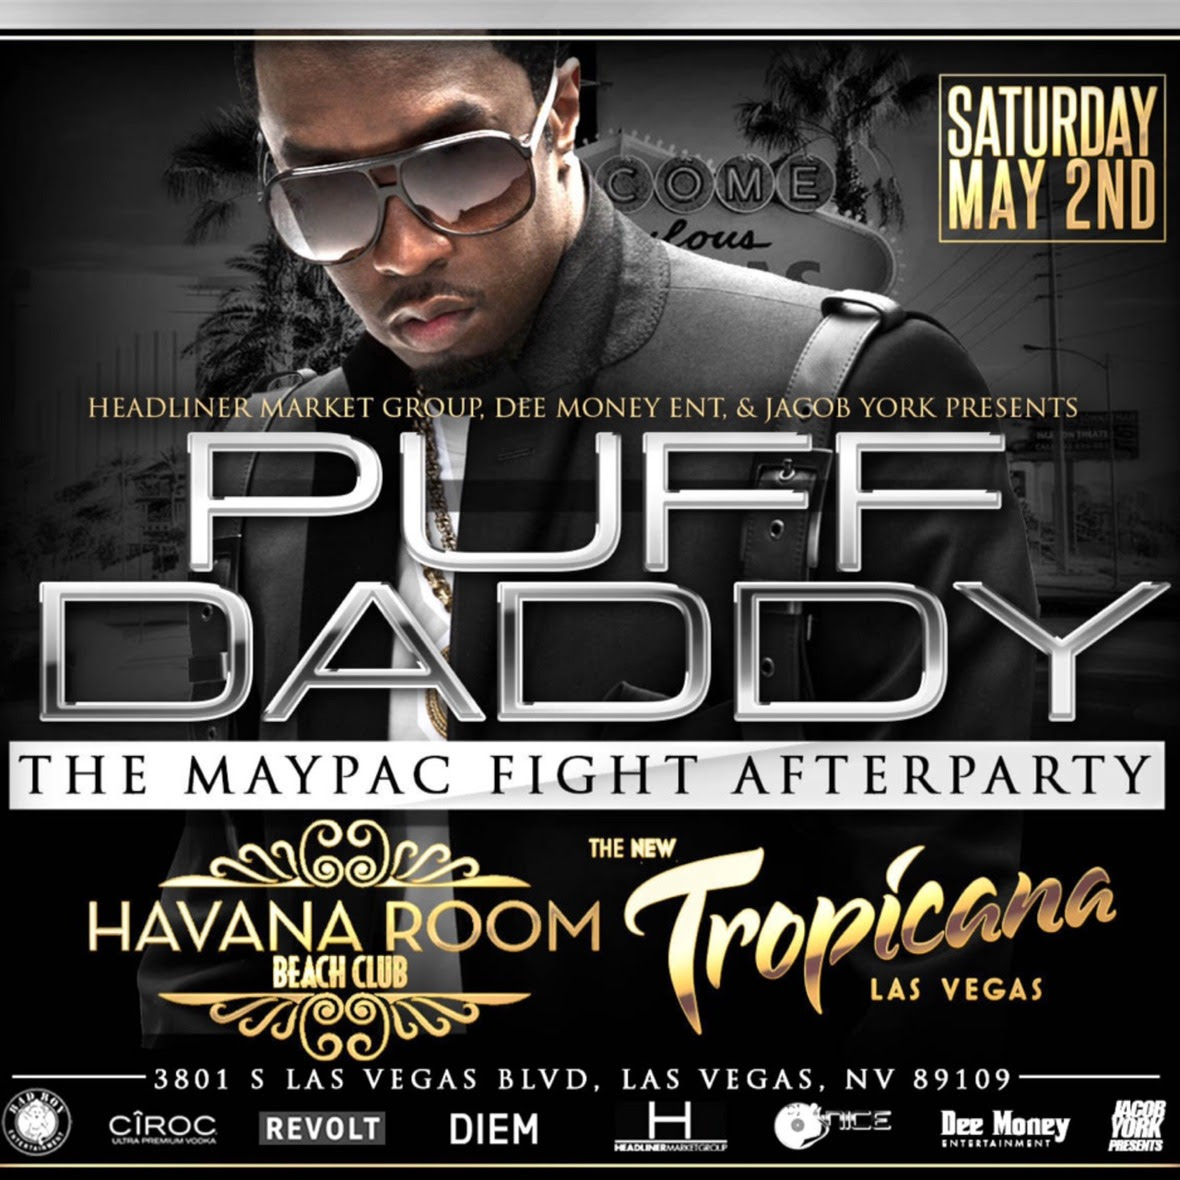 Las Vegas: Fight Weekend w/ Puff Daddy, LIV on Sunday & more!